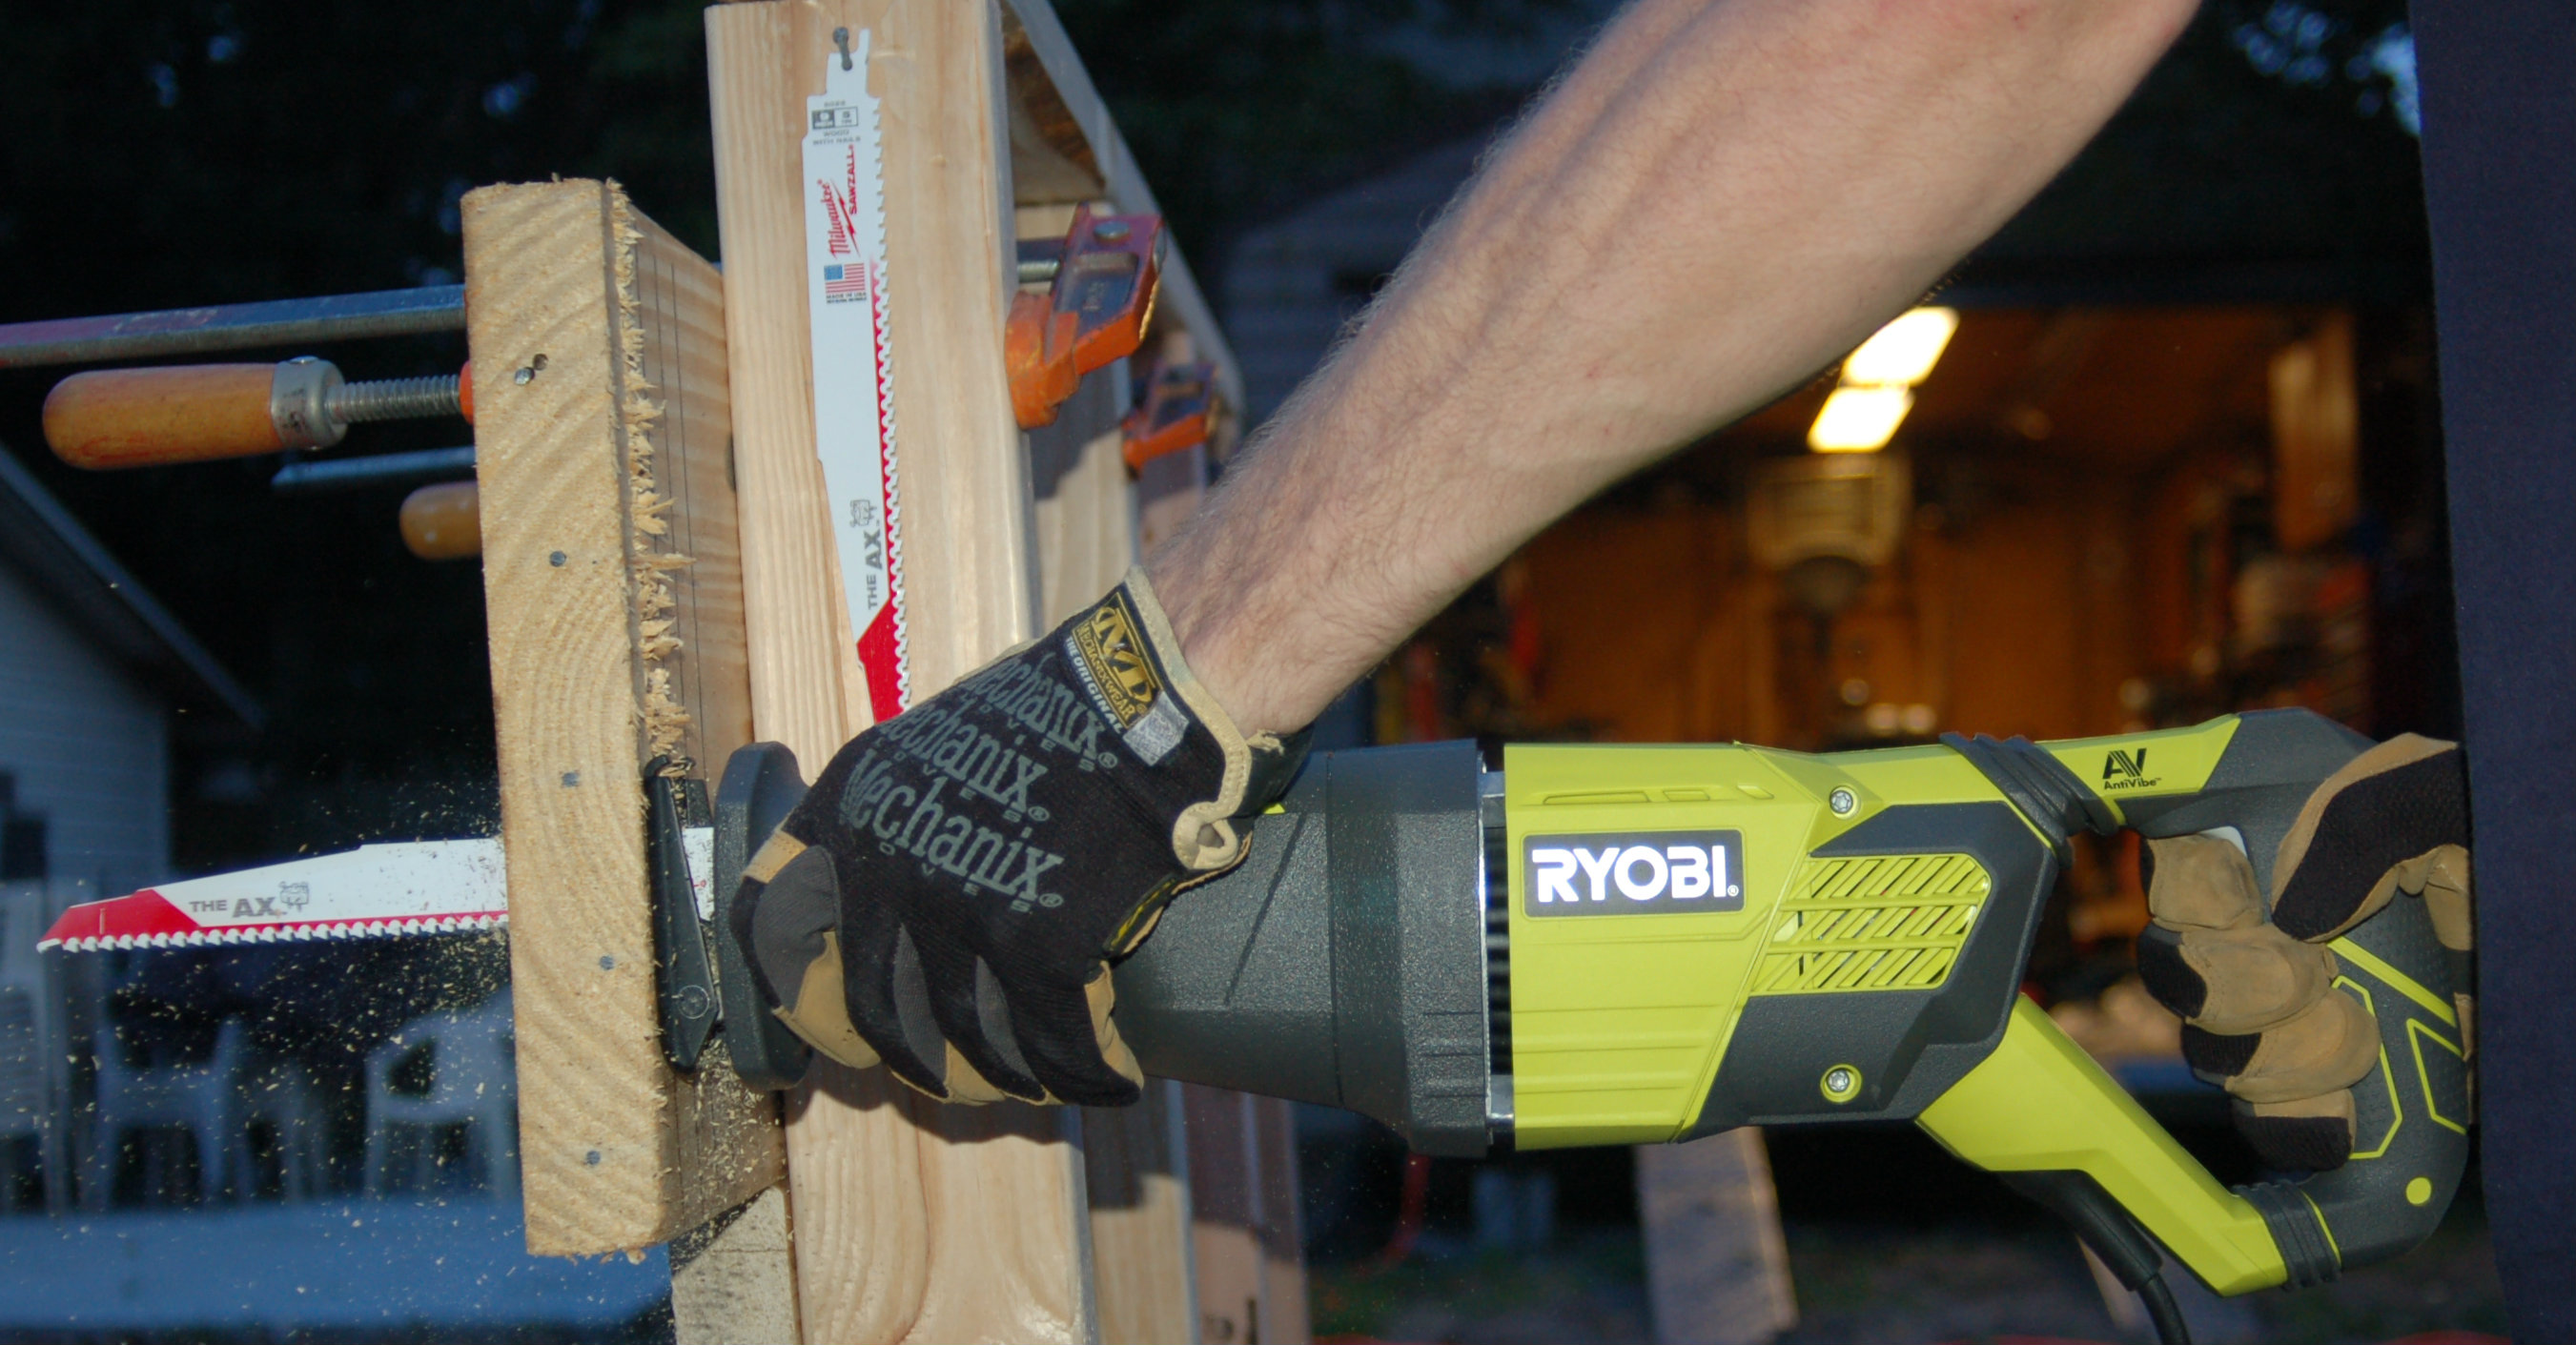 Heavy Duty Corded Reciprocating Saws Review